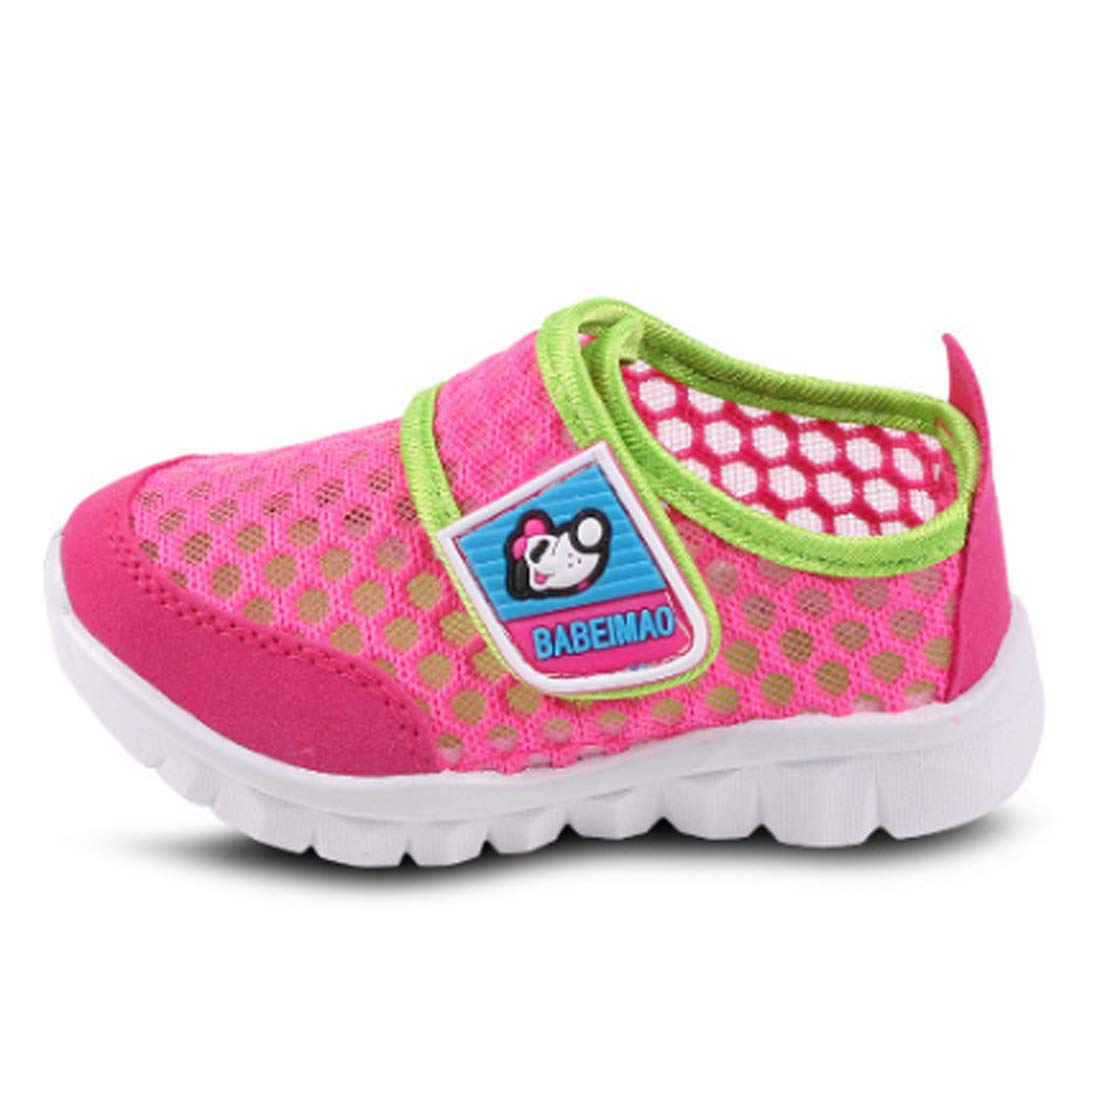 Fulision Childrens Sports shoes soft bottom slip girls mesh running shoes